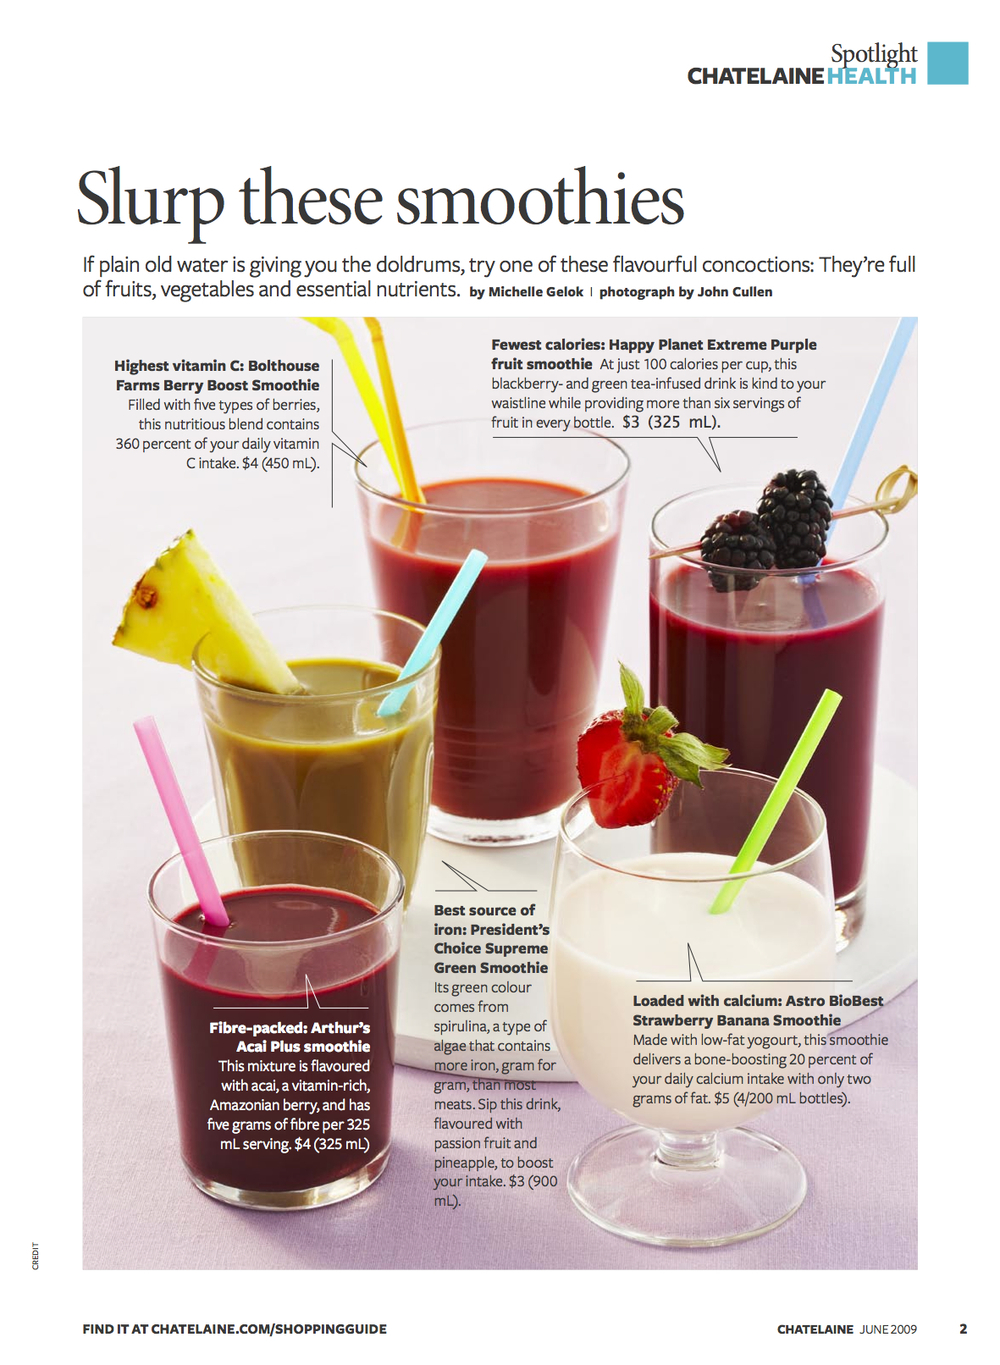 Chatelaine Spotlight Smoothies copy.jpg